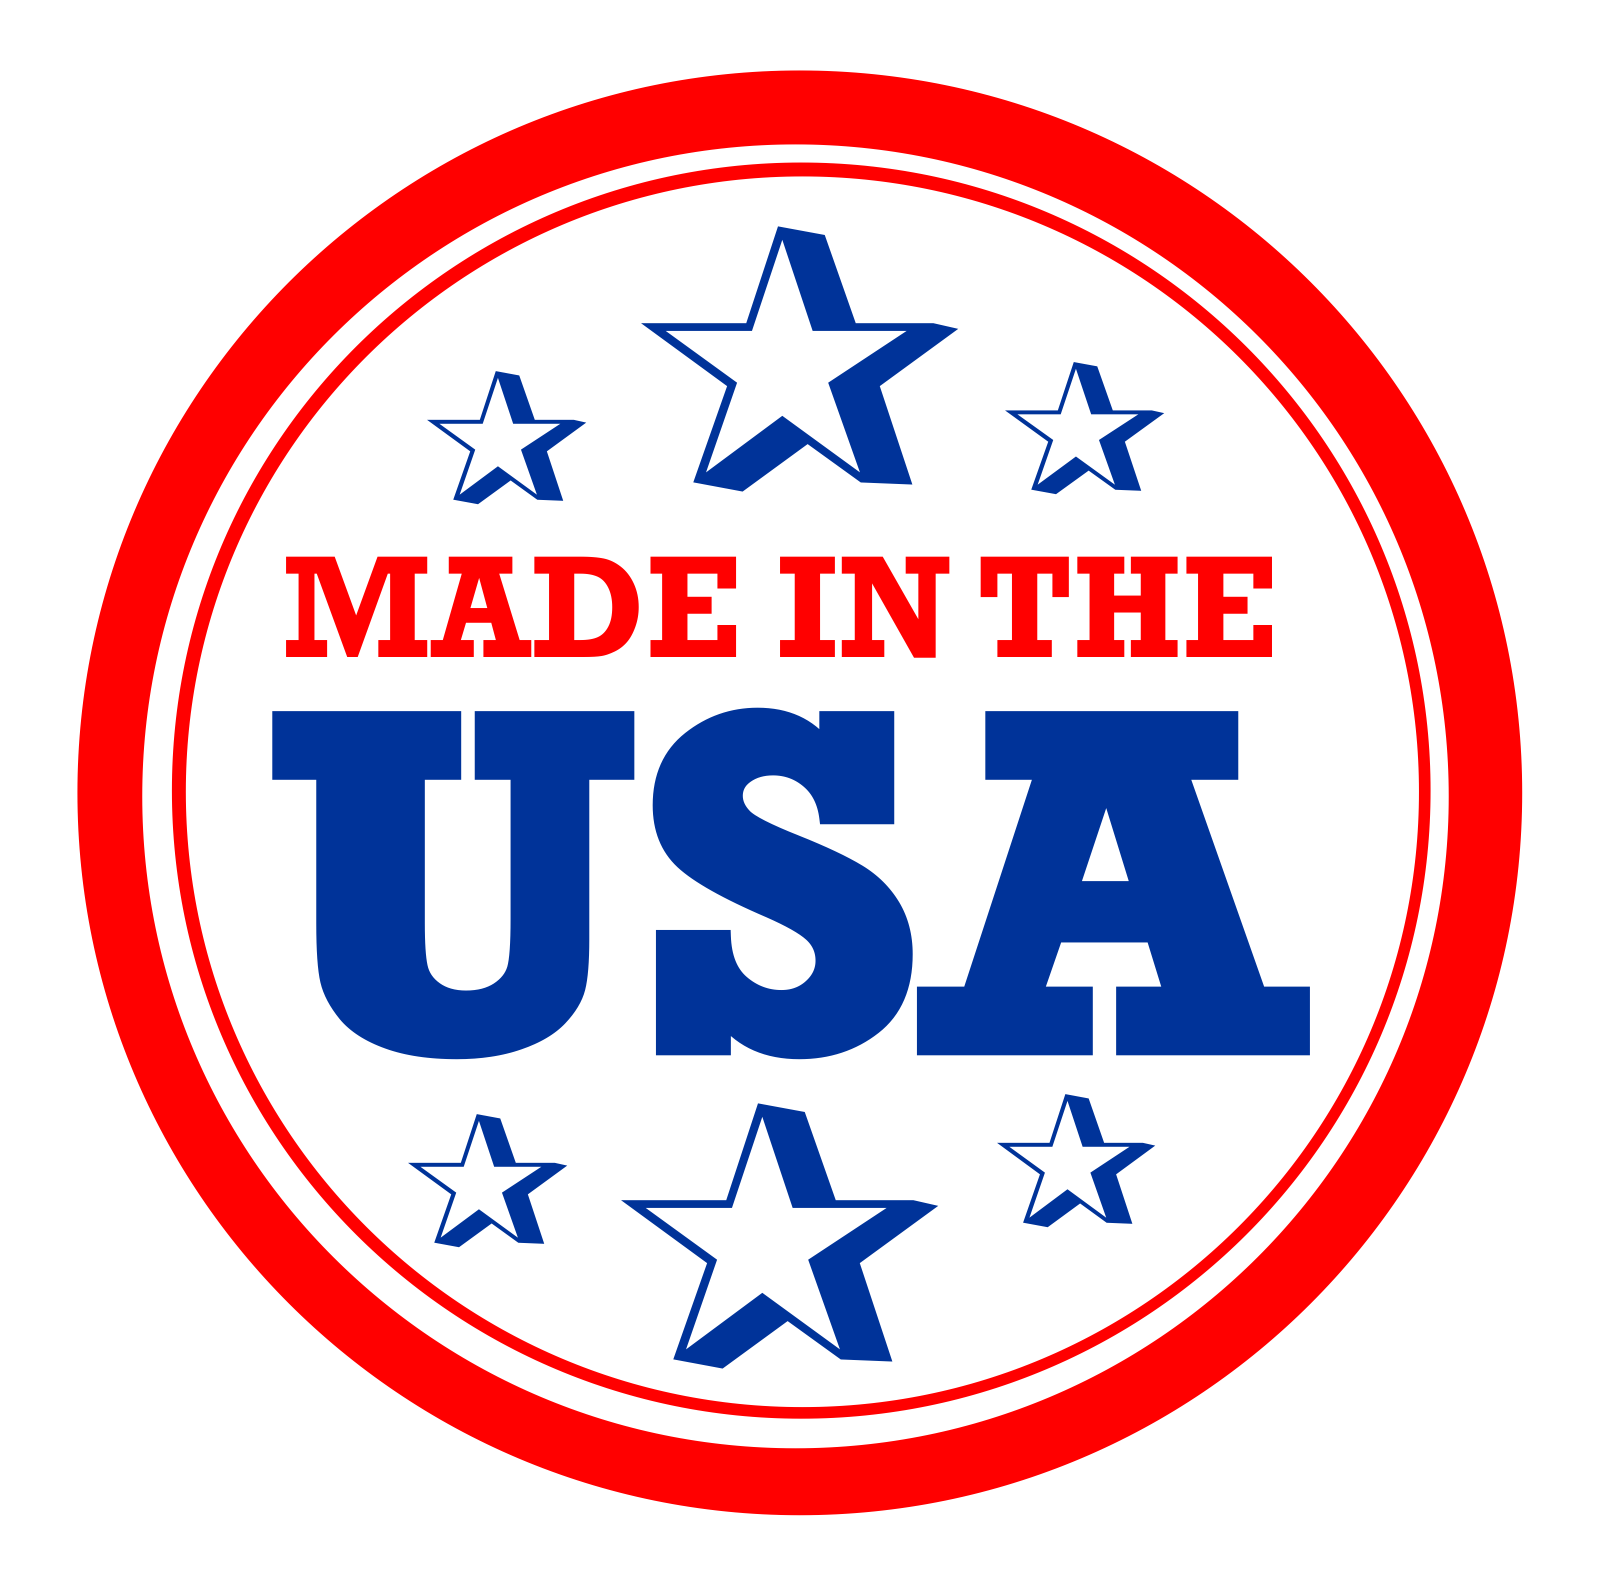 Sleeptronic - Made in the USA